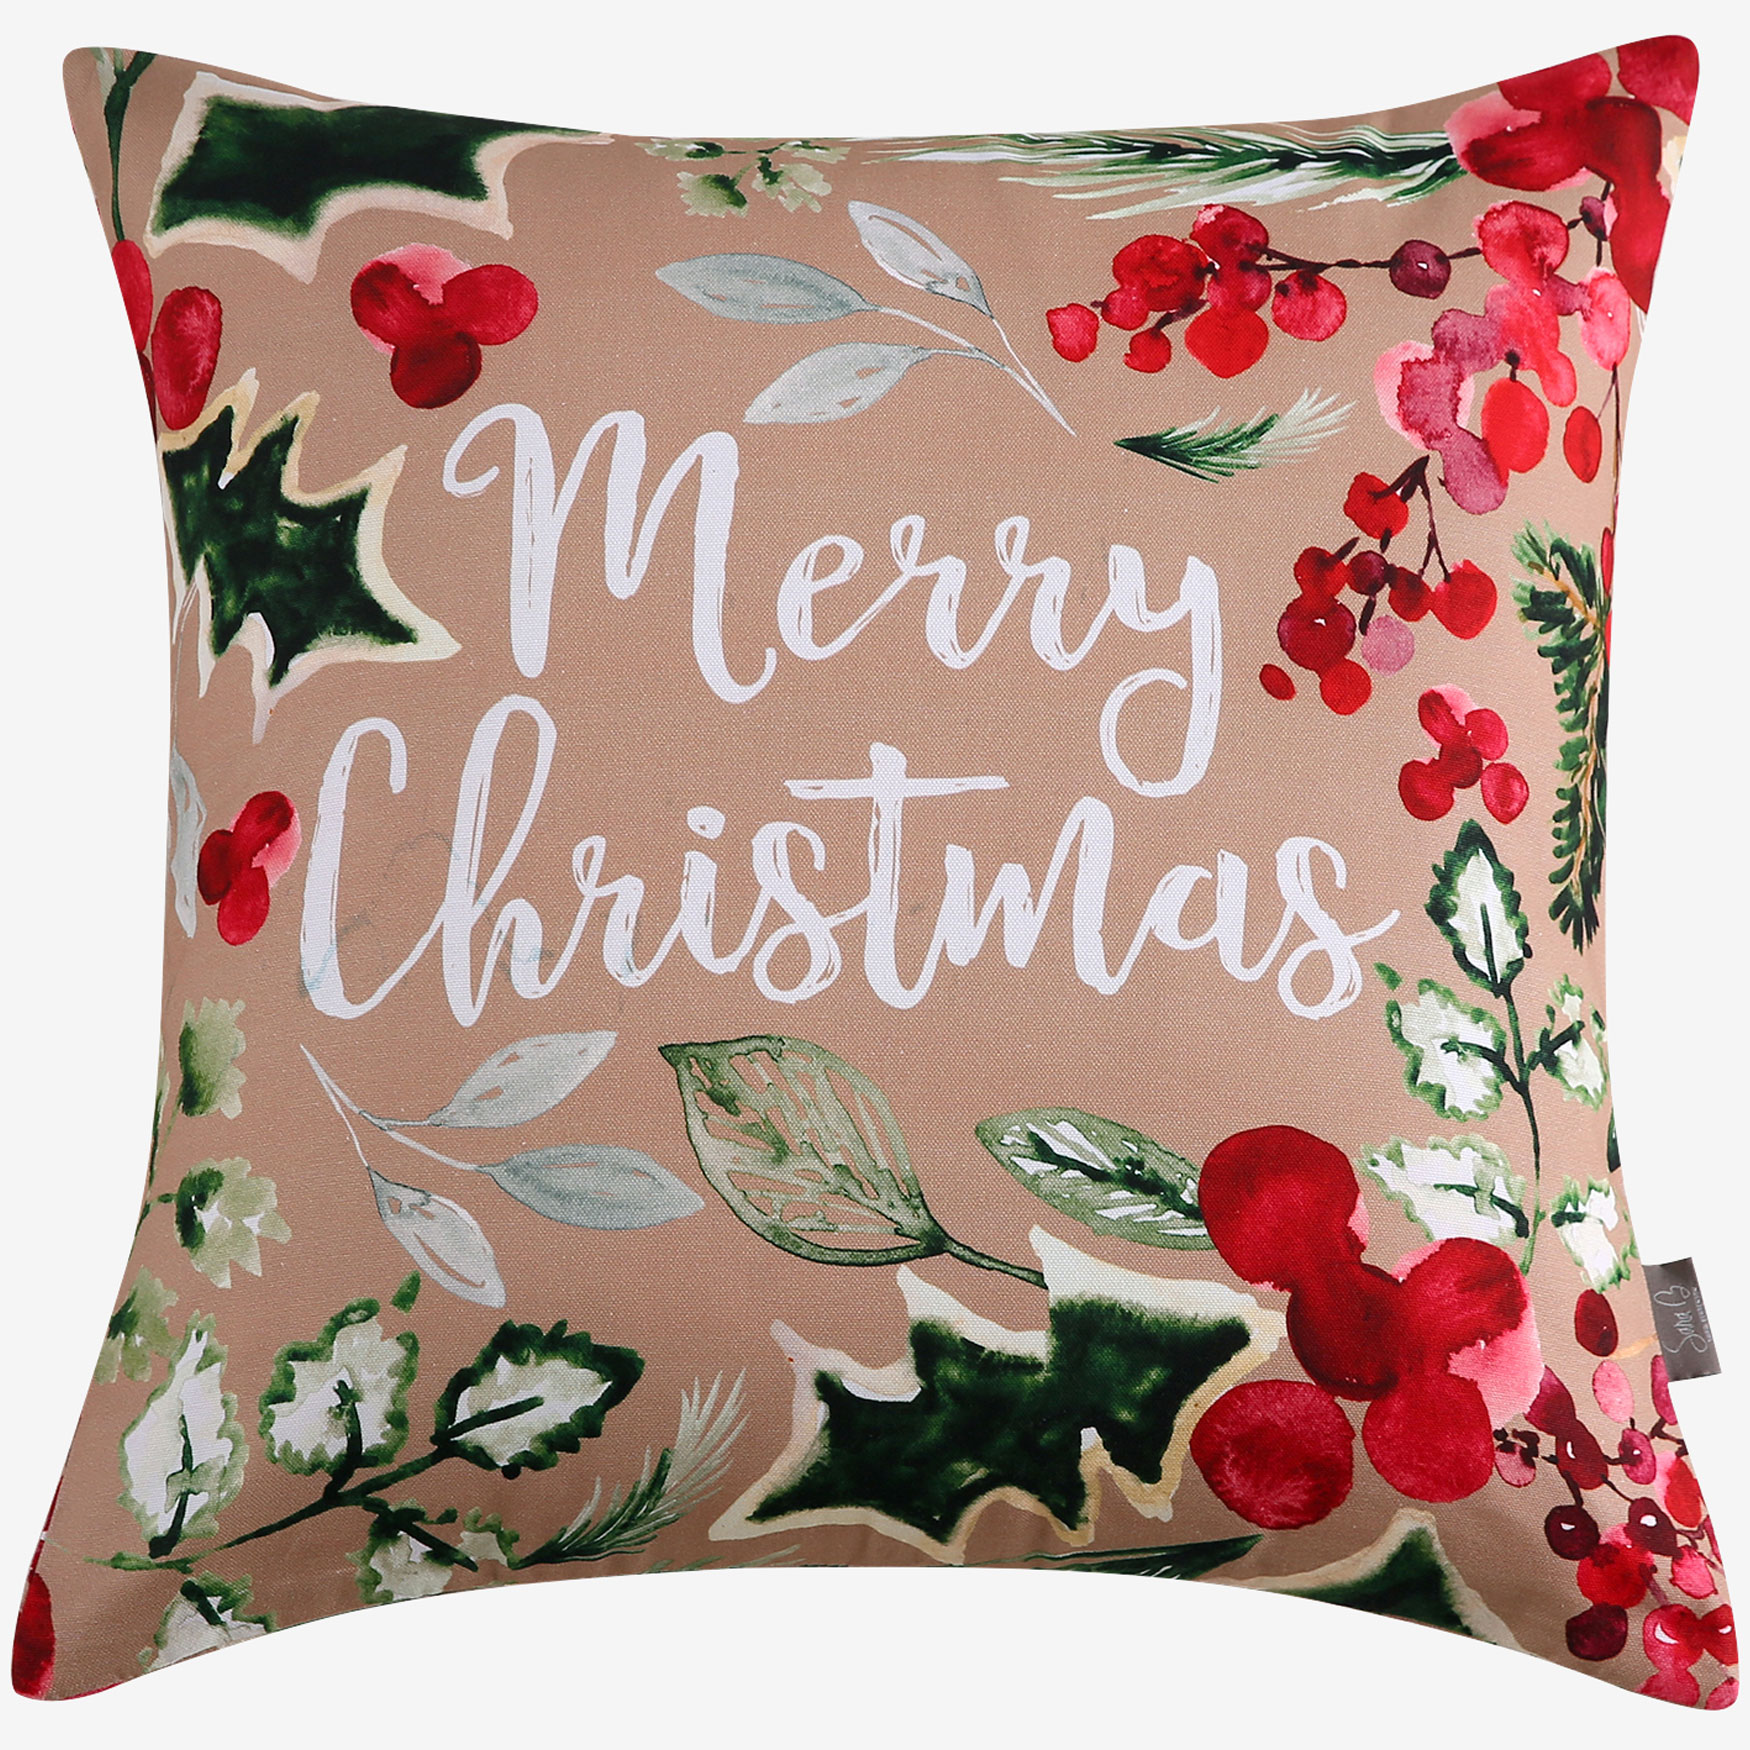 Merry Christmas Decorative Pillow, MULTI